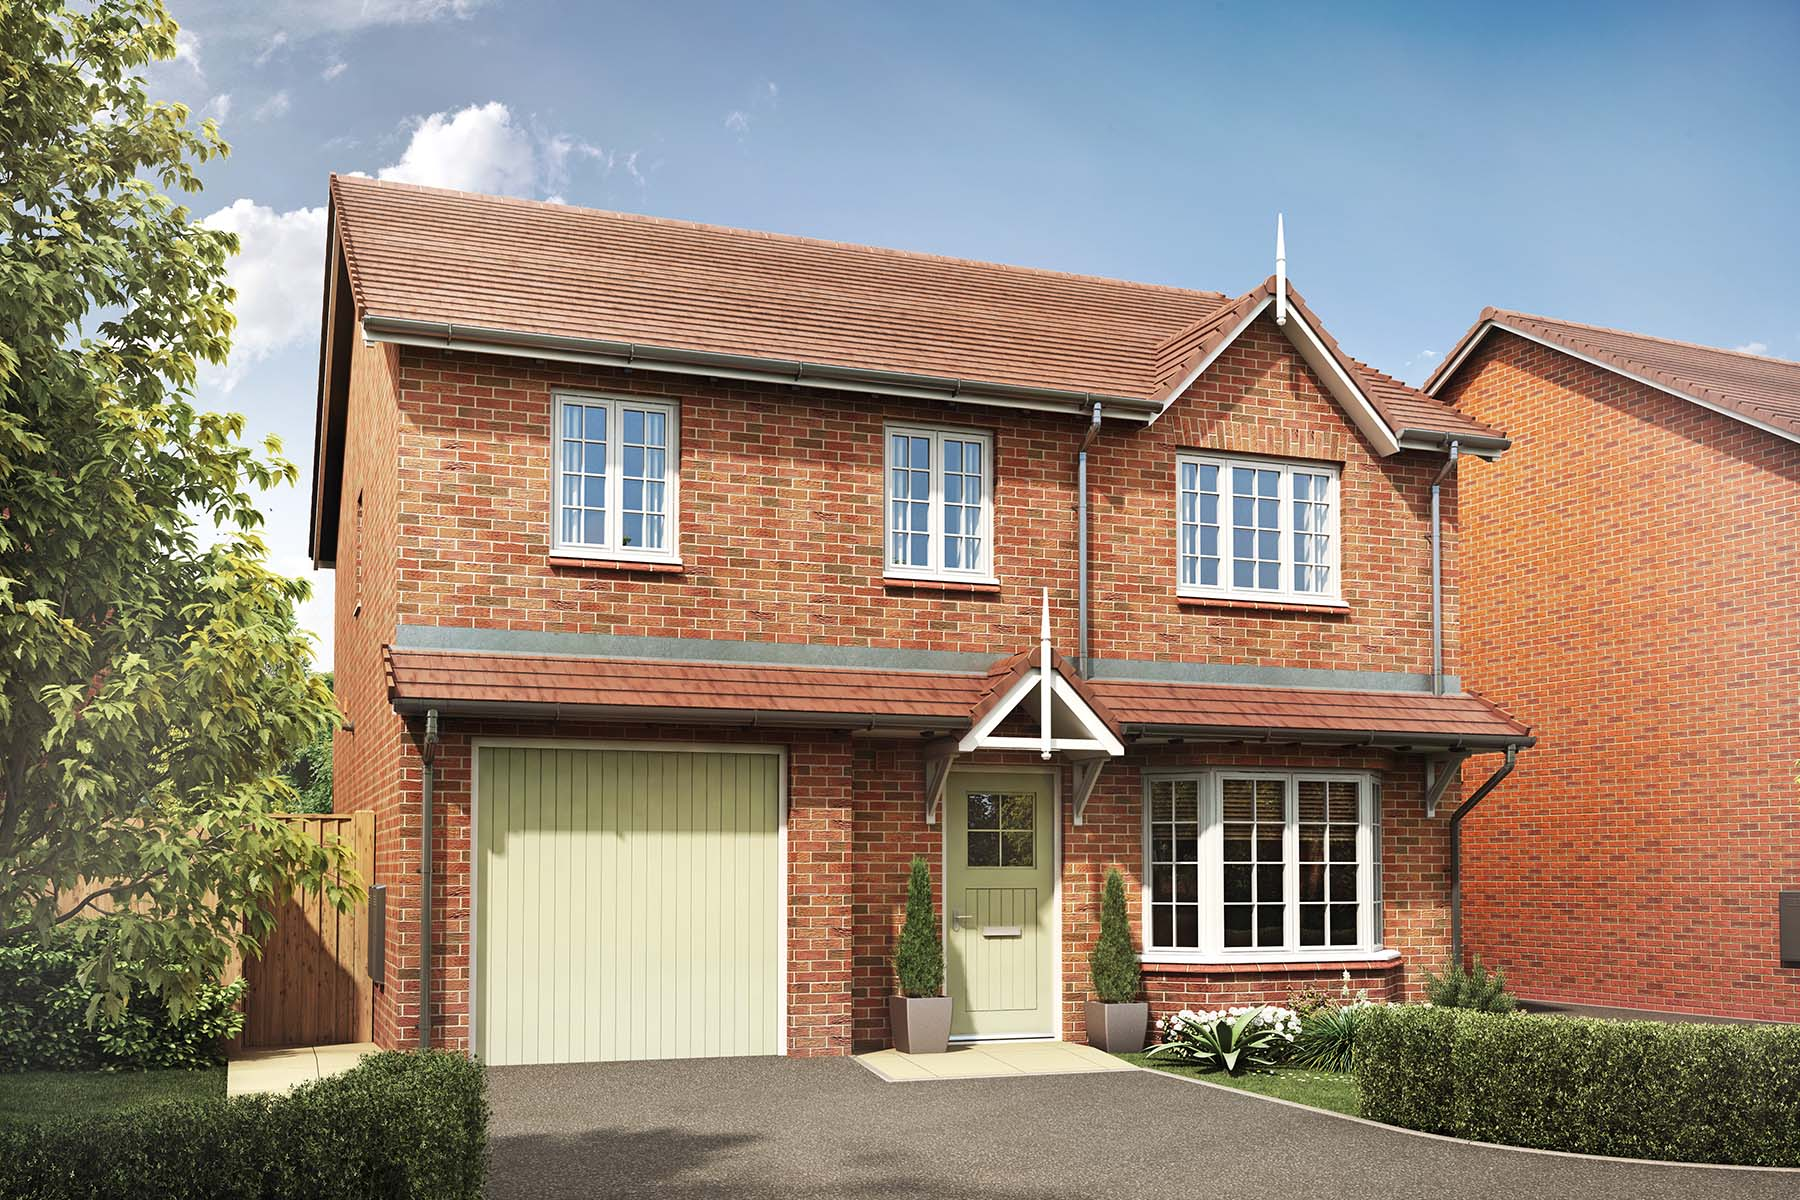 CGI-Mulberry-Lane-Downham-PD49-R1-plot-70